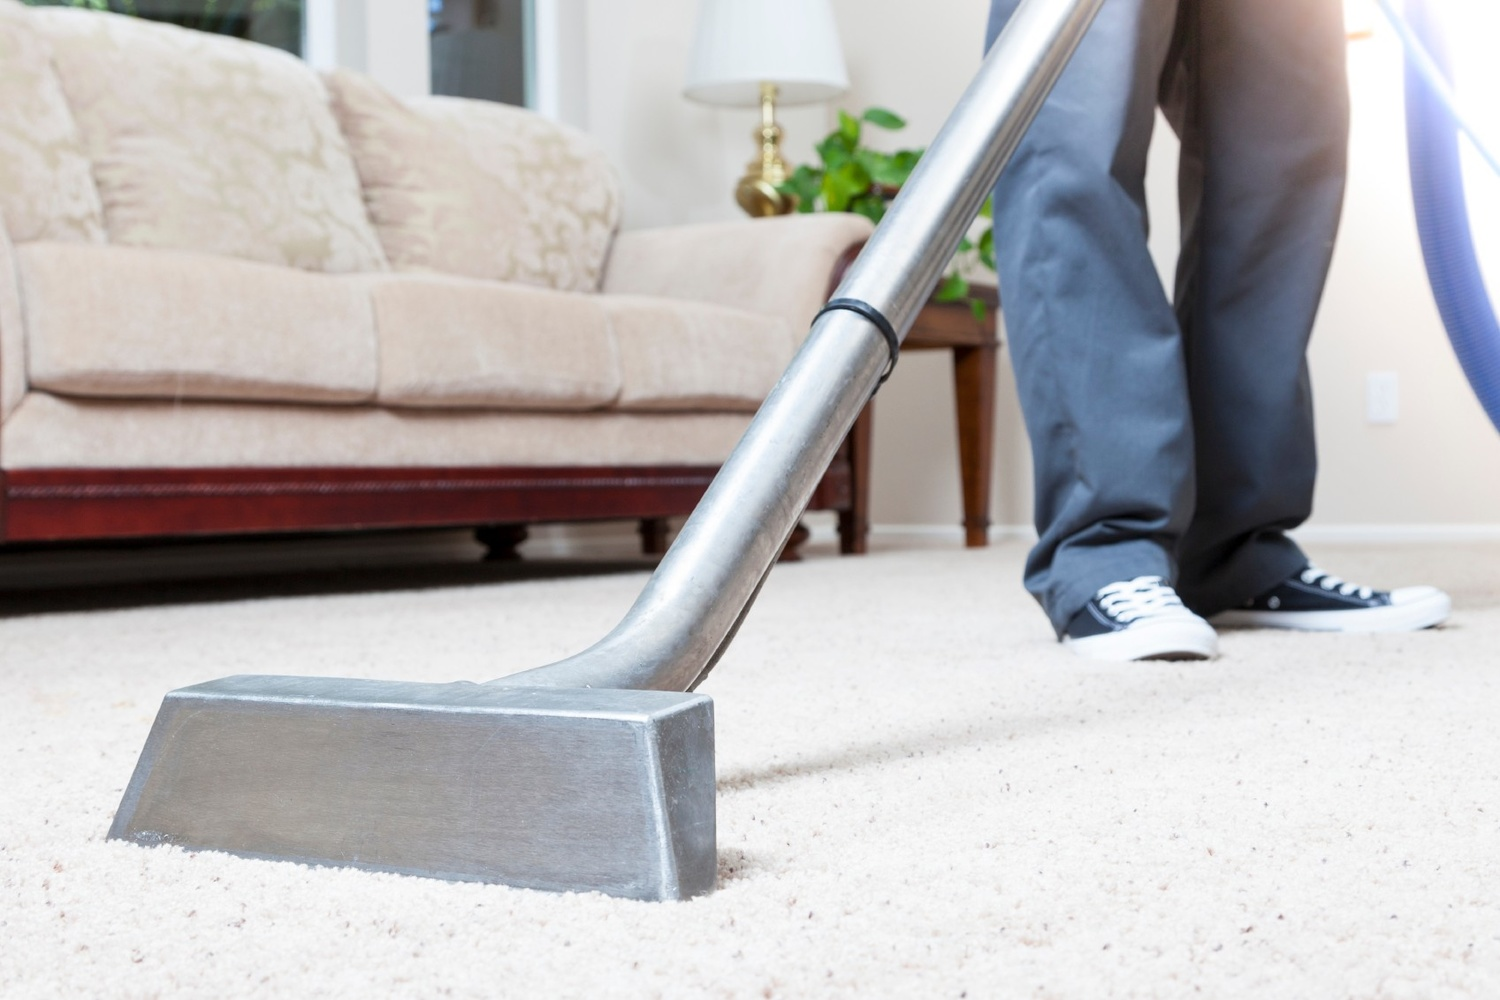 Well-Known Carpet Cleaning Services in Melbourne by James smith